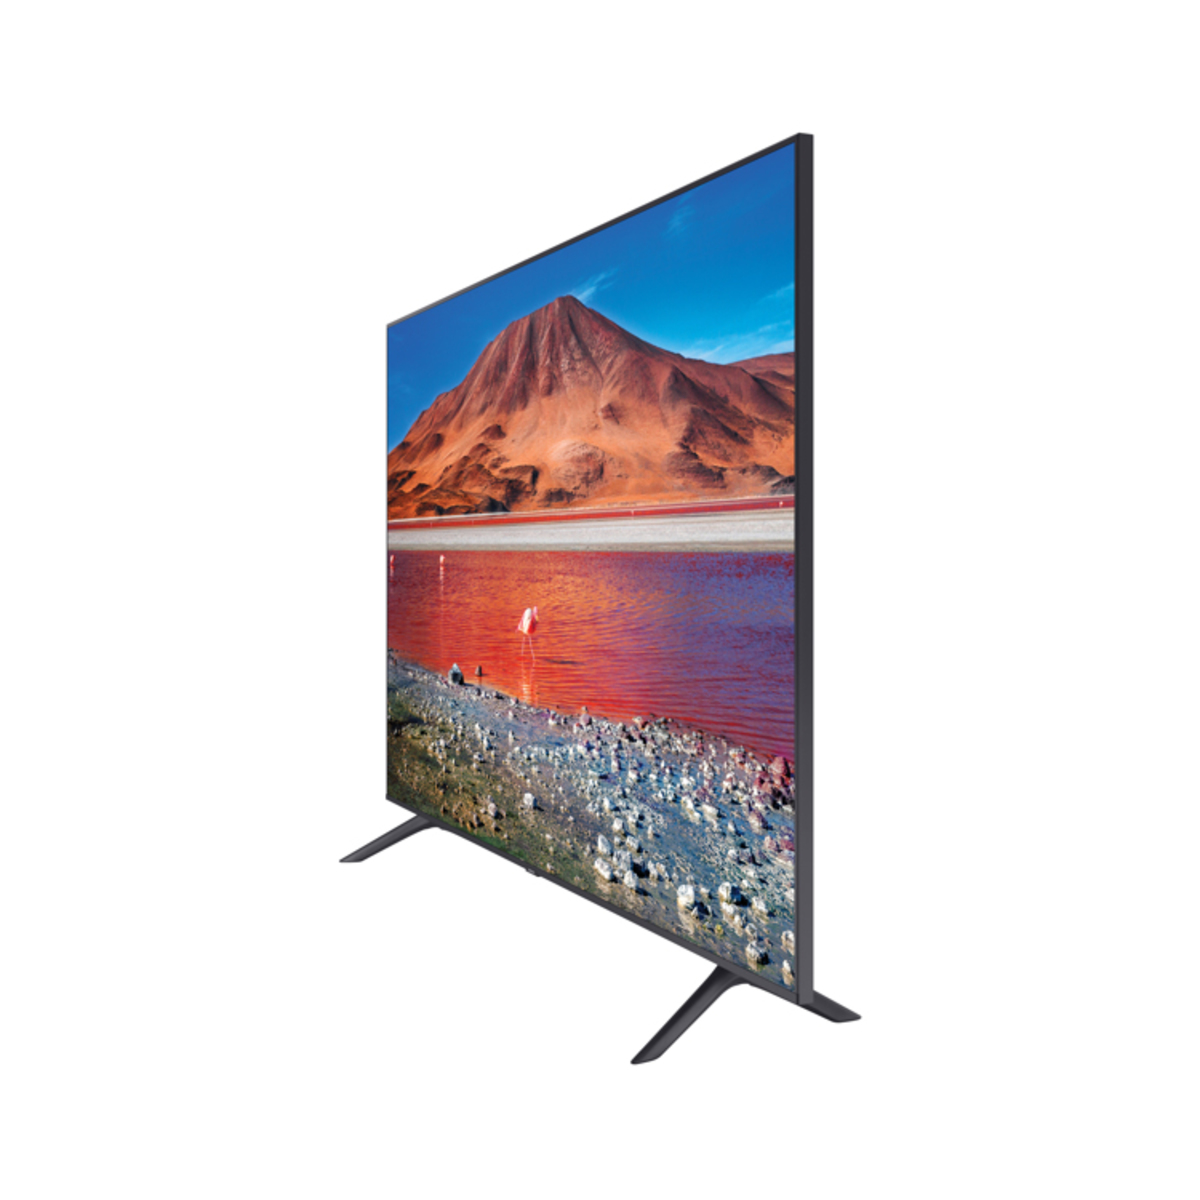 "Samsung UE65NU7100 65"" Ultra HD certified HDR Smart 4K TV"